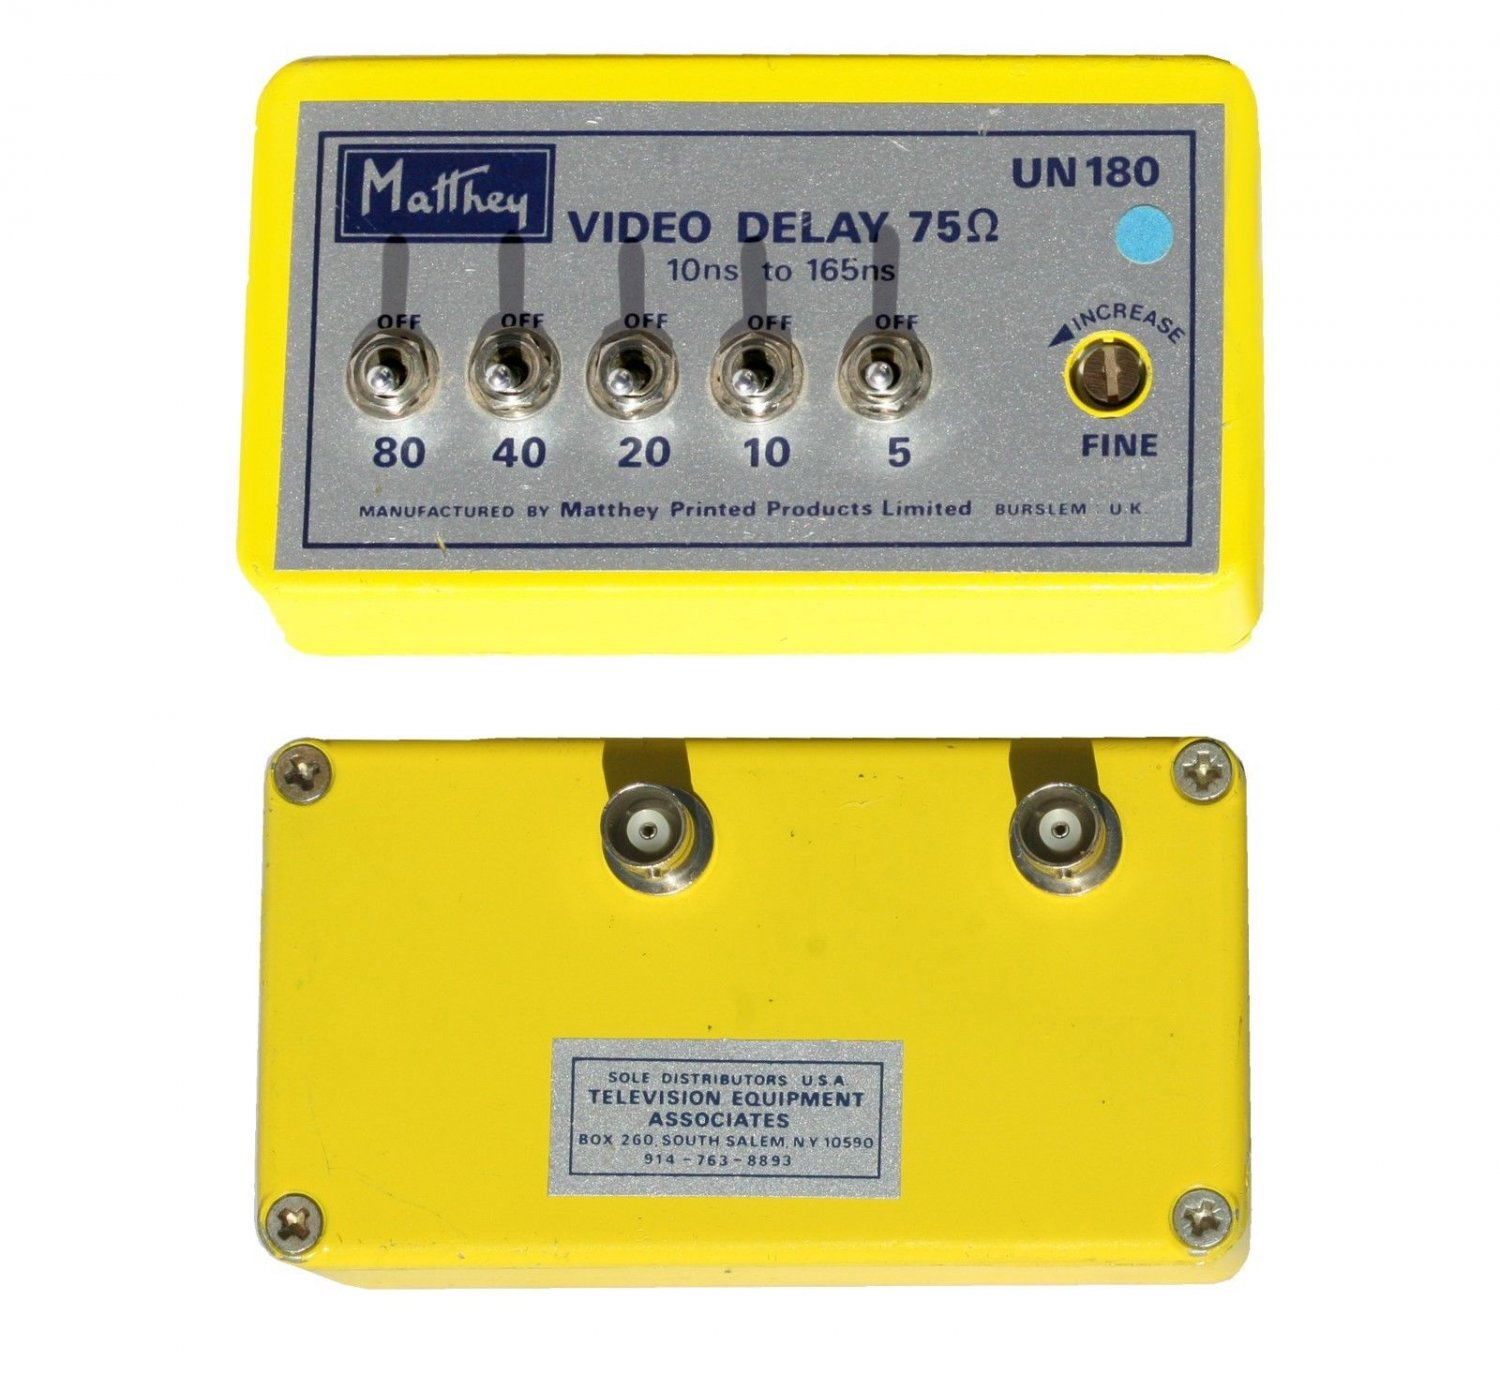 Matthey Video Delay 75 UN180 10ns ro 165ns